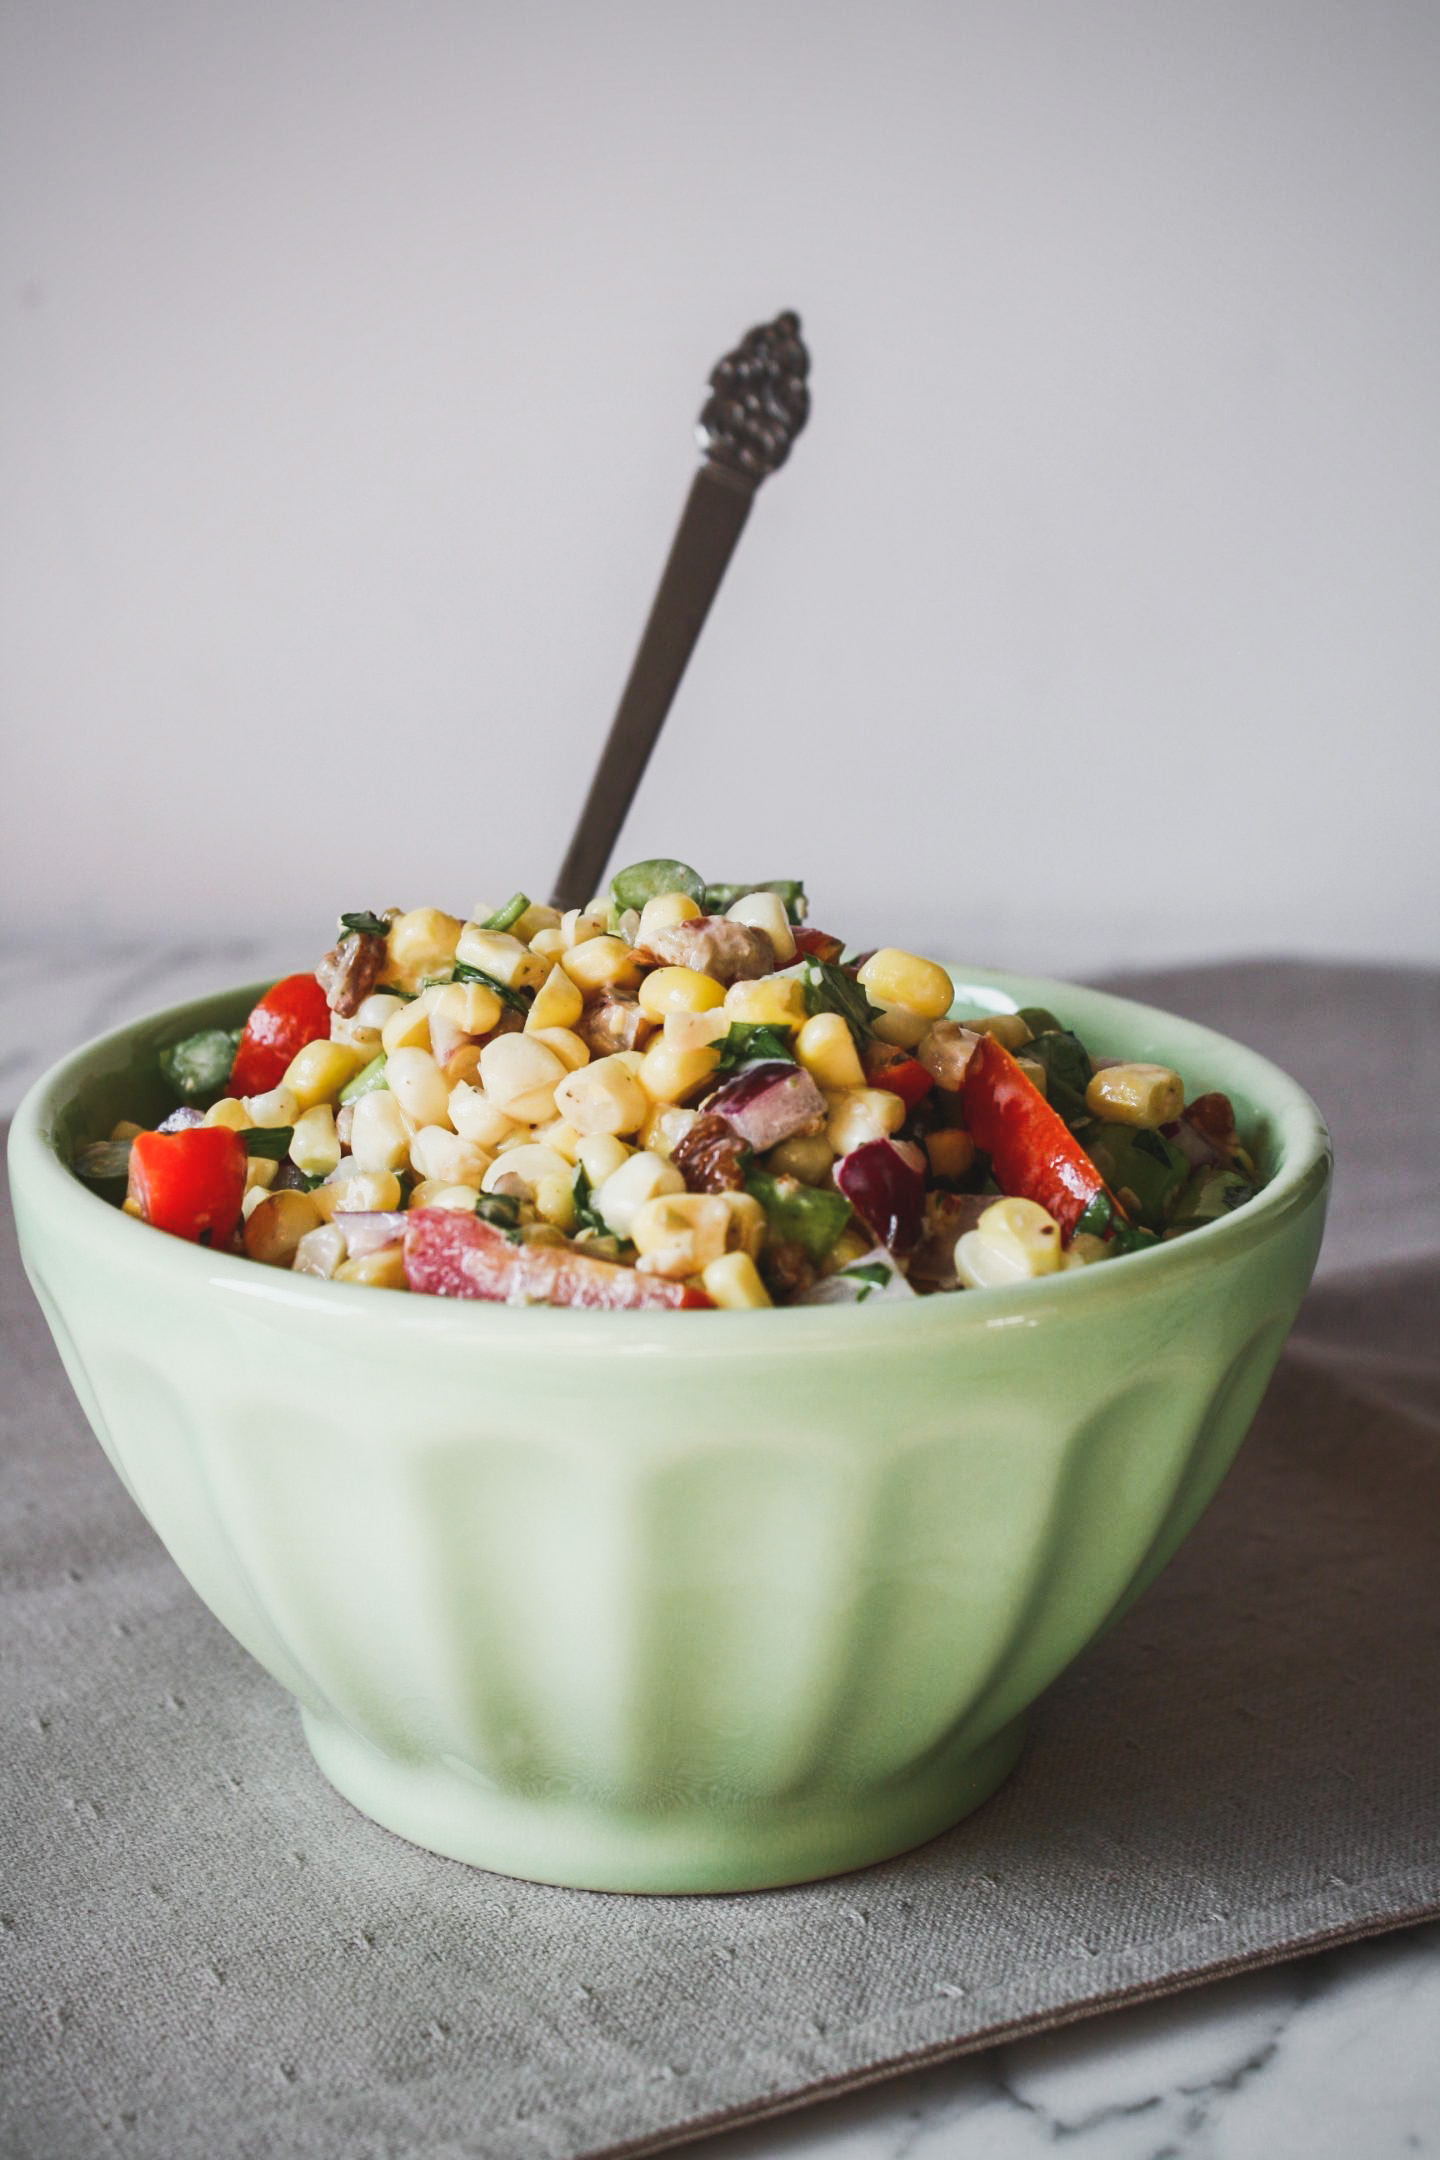 Photograph of corn salad in a green bowl set on a marble table.